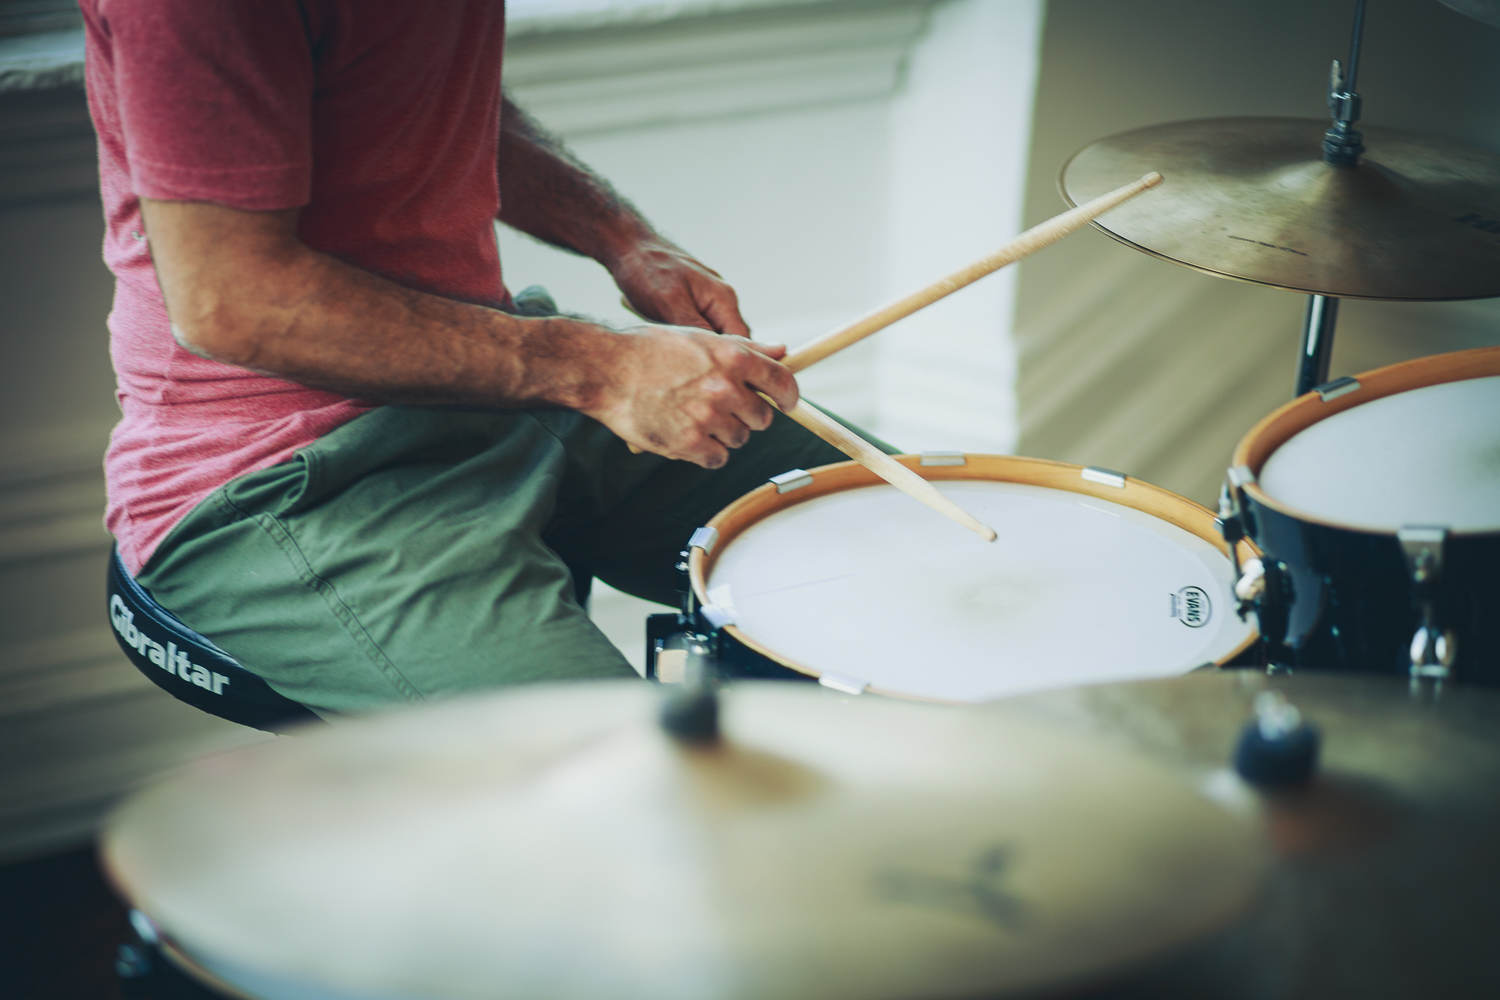 simpledrummer, drum set, drums, drum lessons, online lessons, beginner drums, online drums lessons, drum tutorials, learn to play drums, how to play drums, best drum lessons for beginners, best online drum lessons